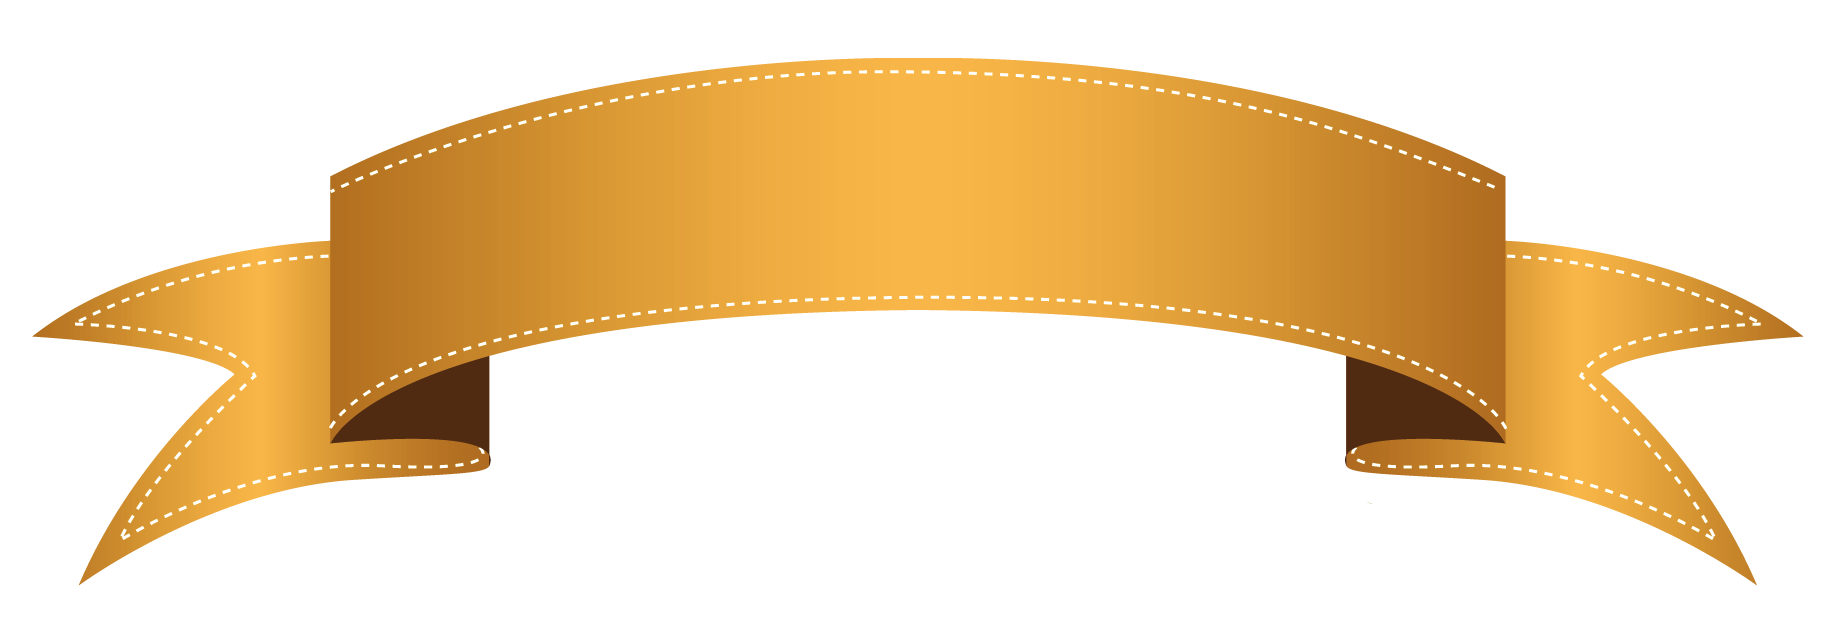 gold banner png 40205 free icons and png backgrounds clip art gold star banner clip art gold star award